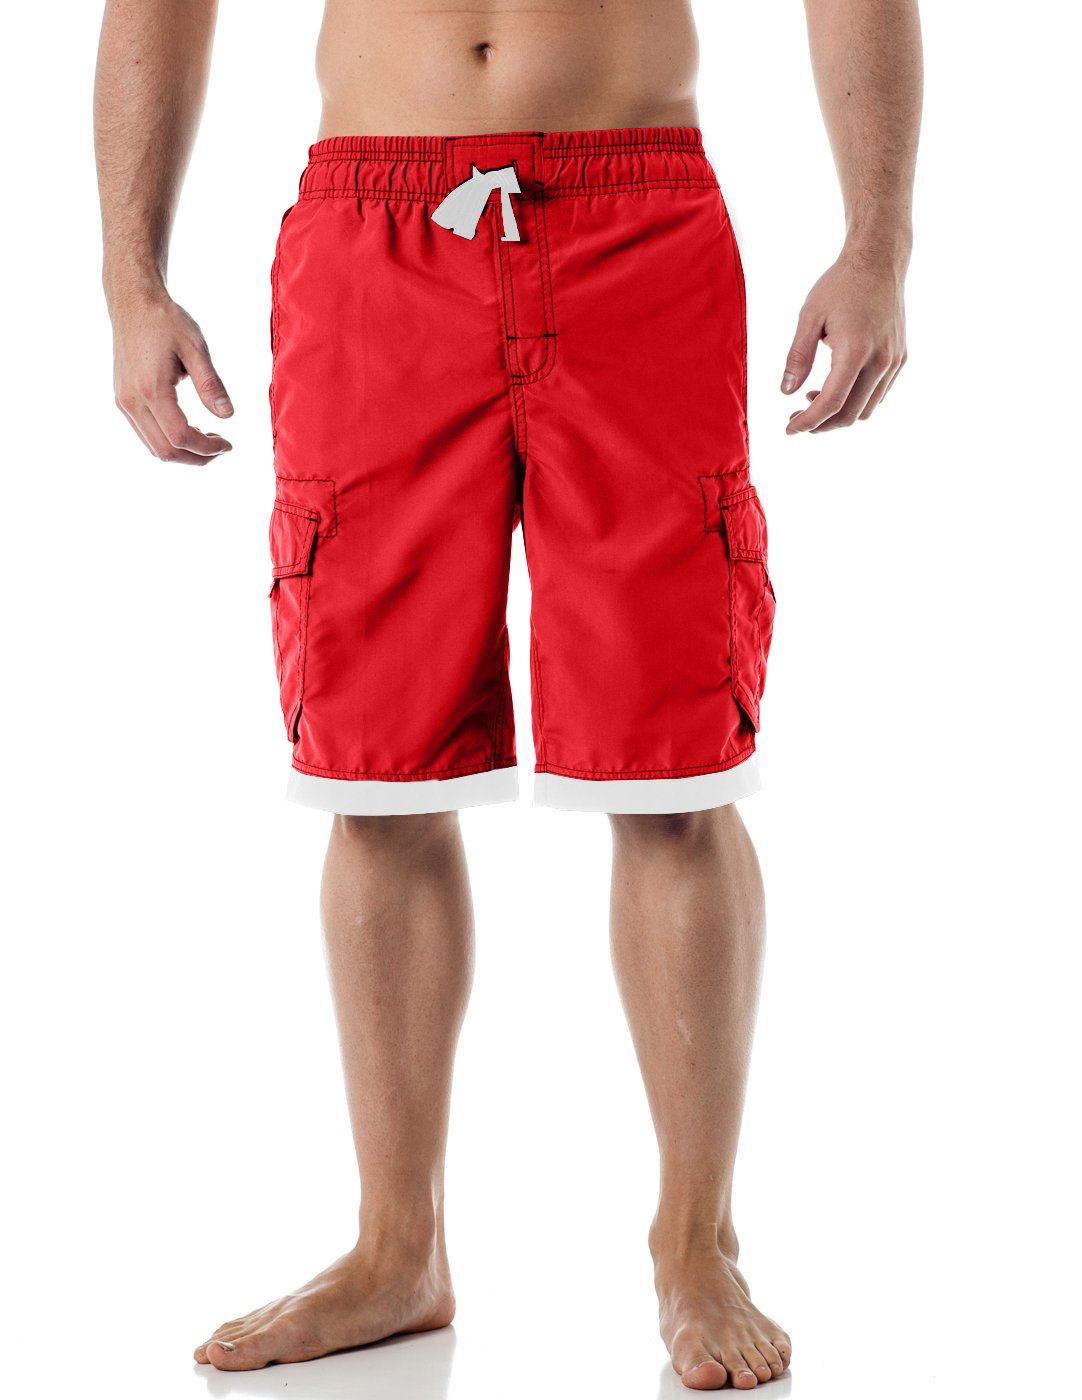 b269989574e59 Board Shorts : Online Shopping for Clothing, Shoes, Jewelry, Pet ...